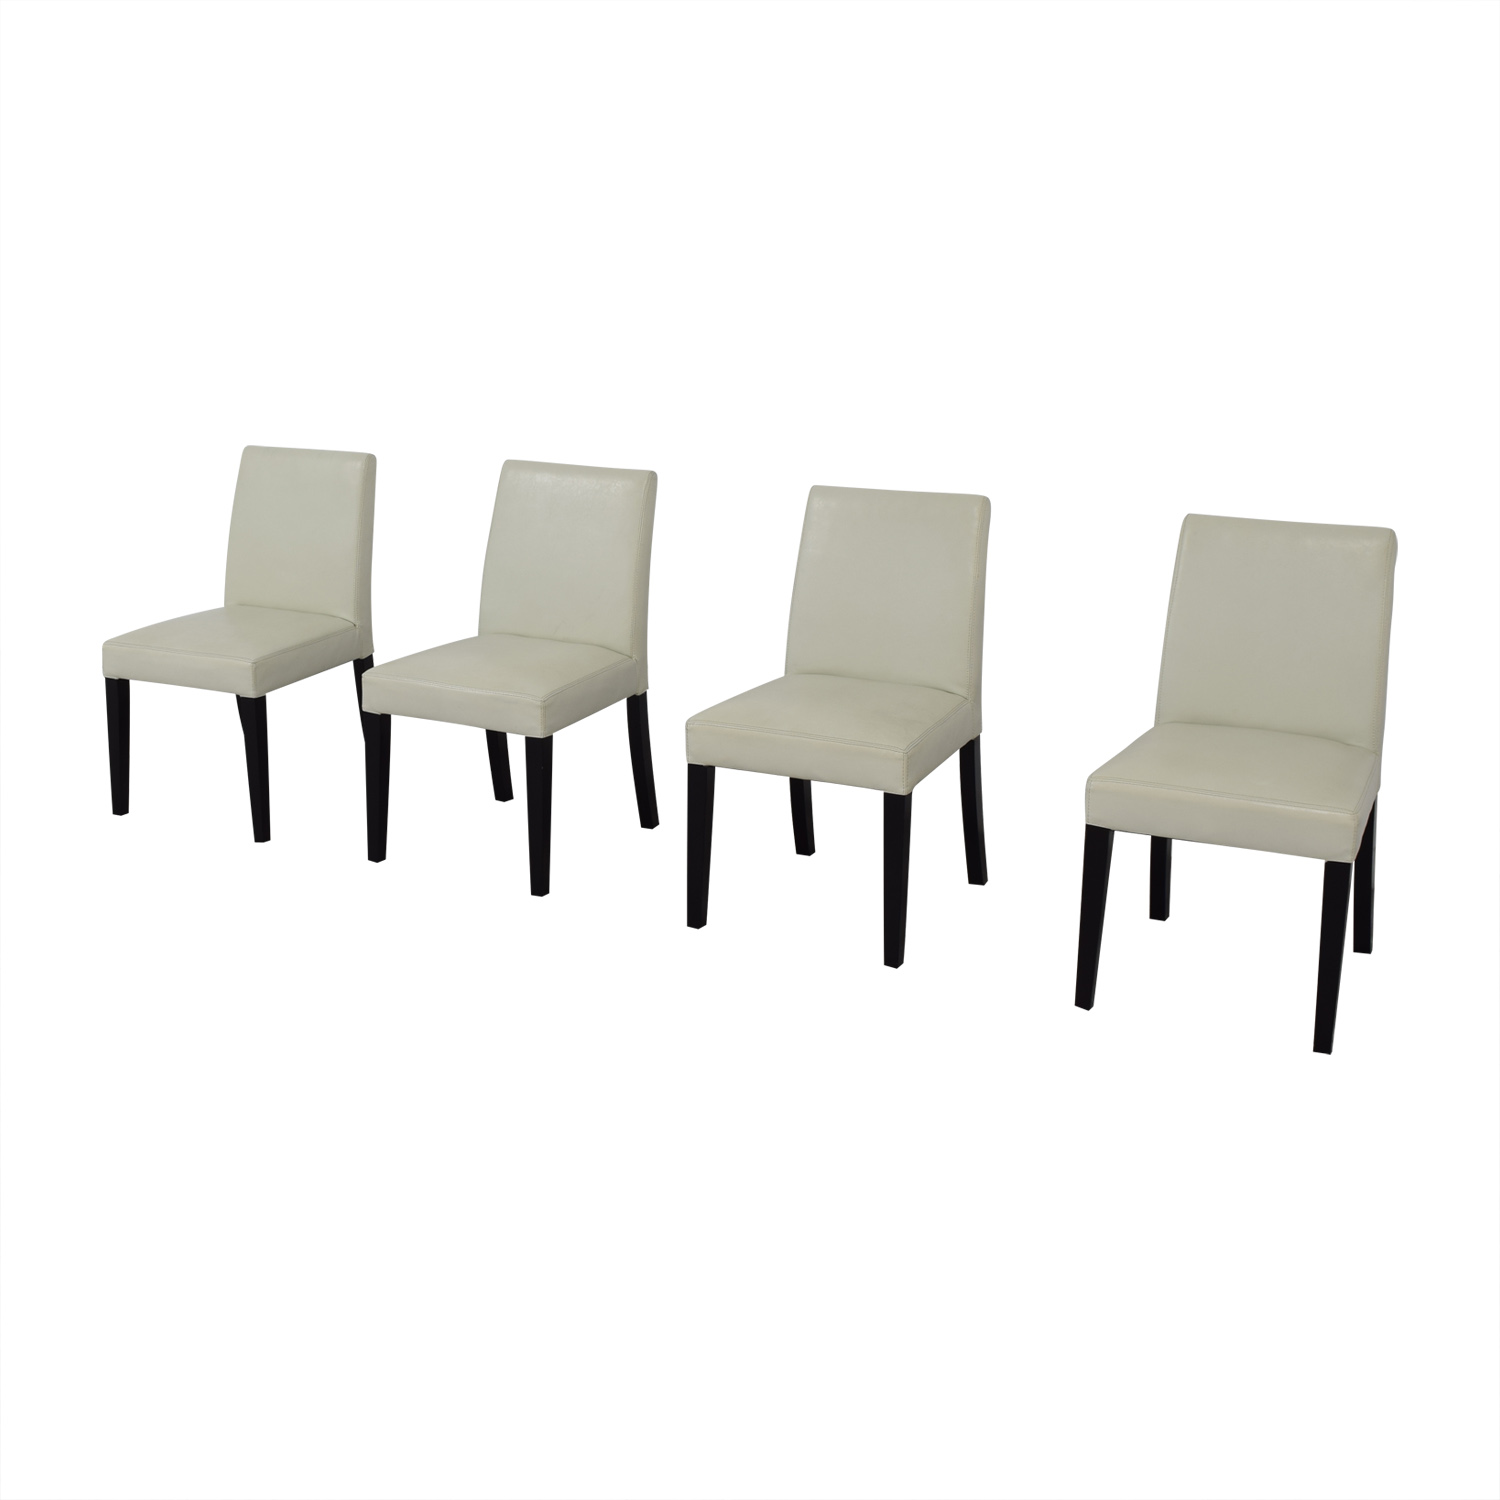 buy Crate & Barrel White Leather Dining Chairs Crate & Barrel